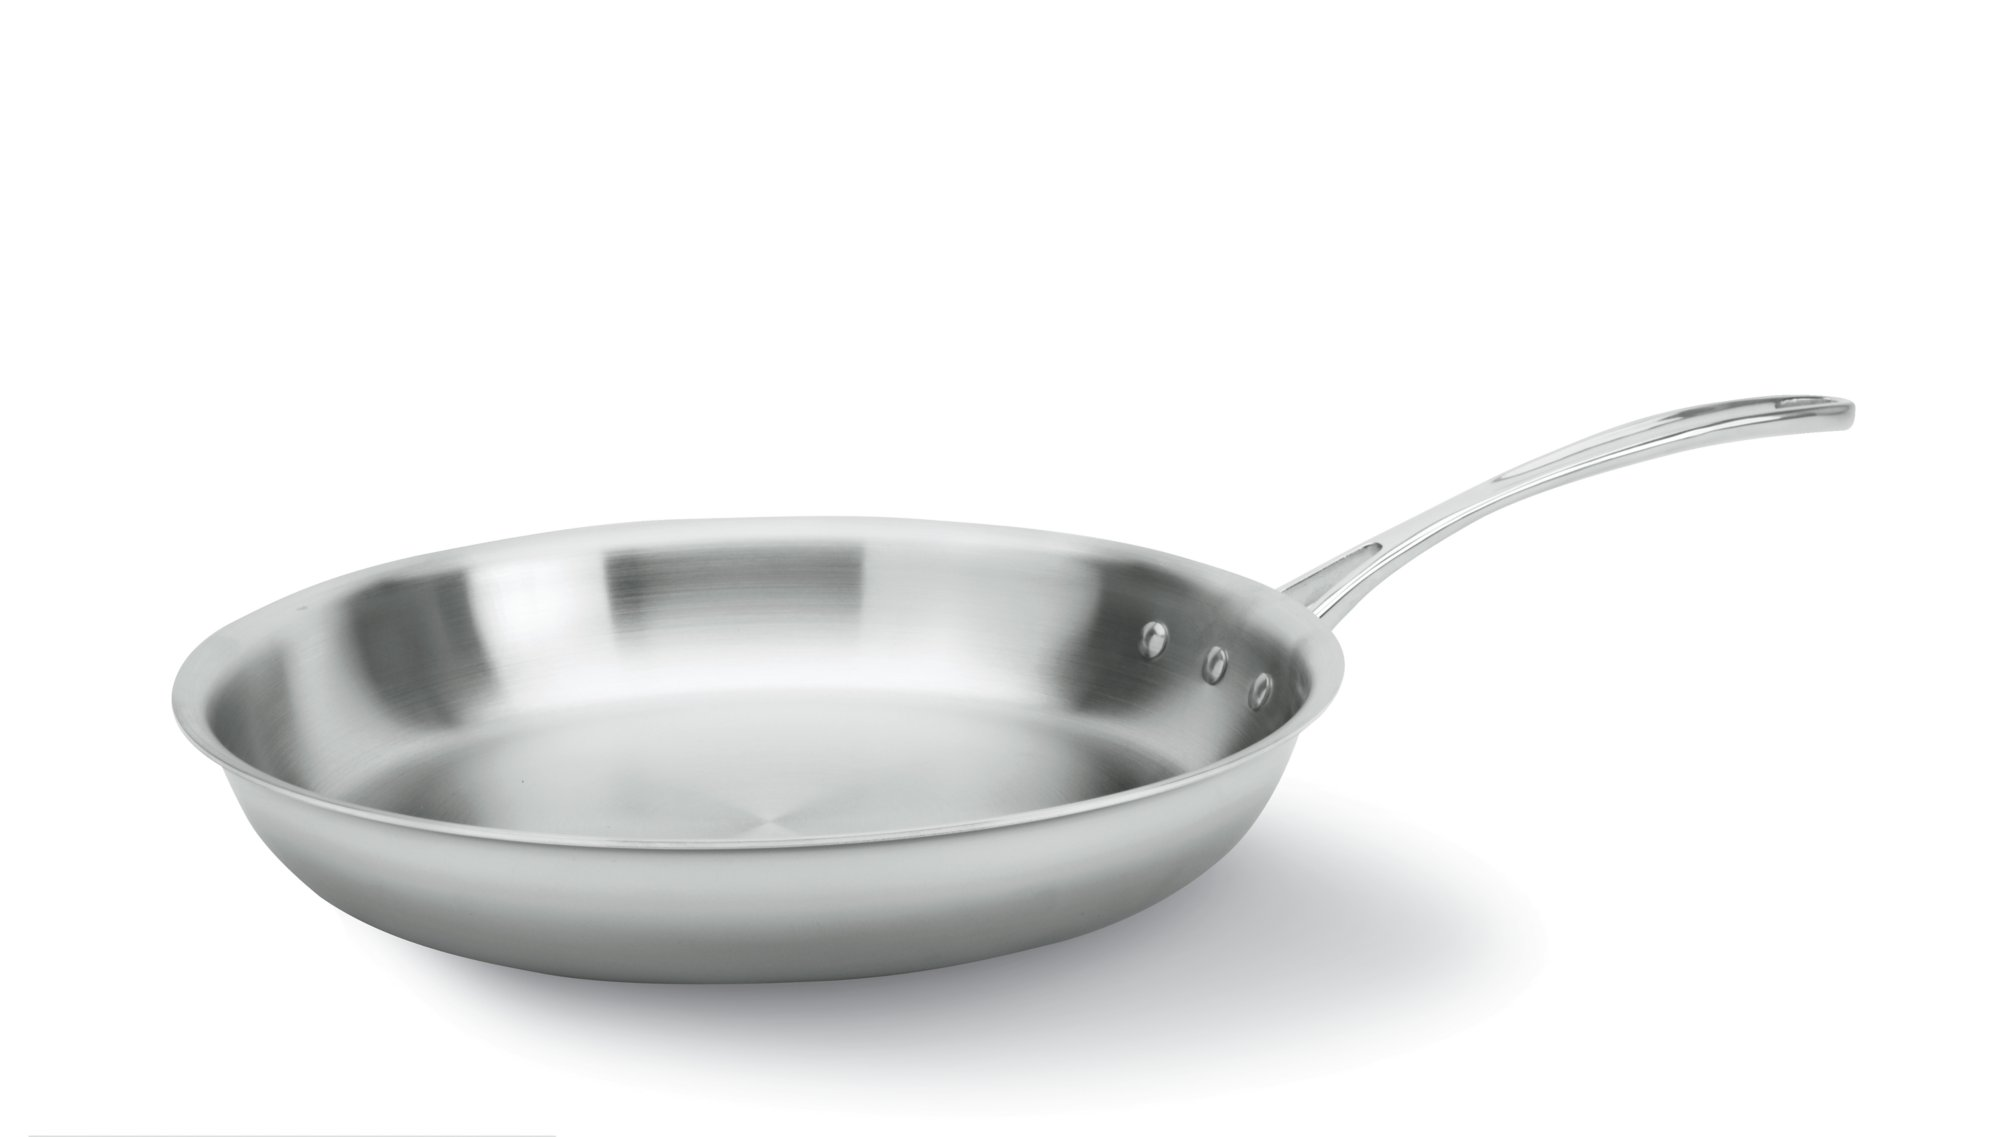 Calphalon Tri-Ply Stainless Steel 12-in. Omelette Pan